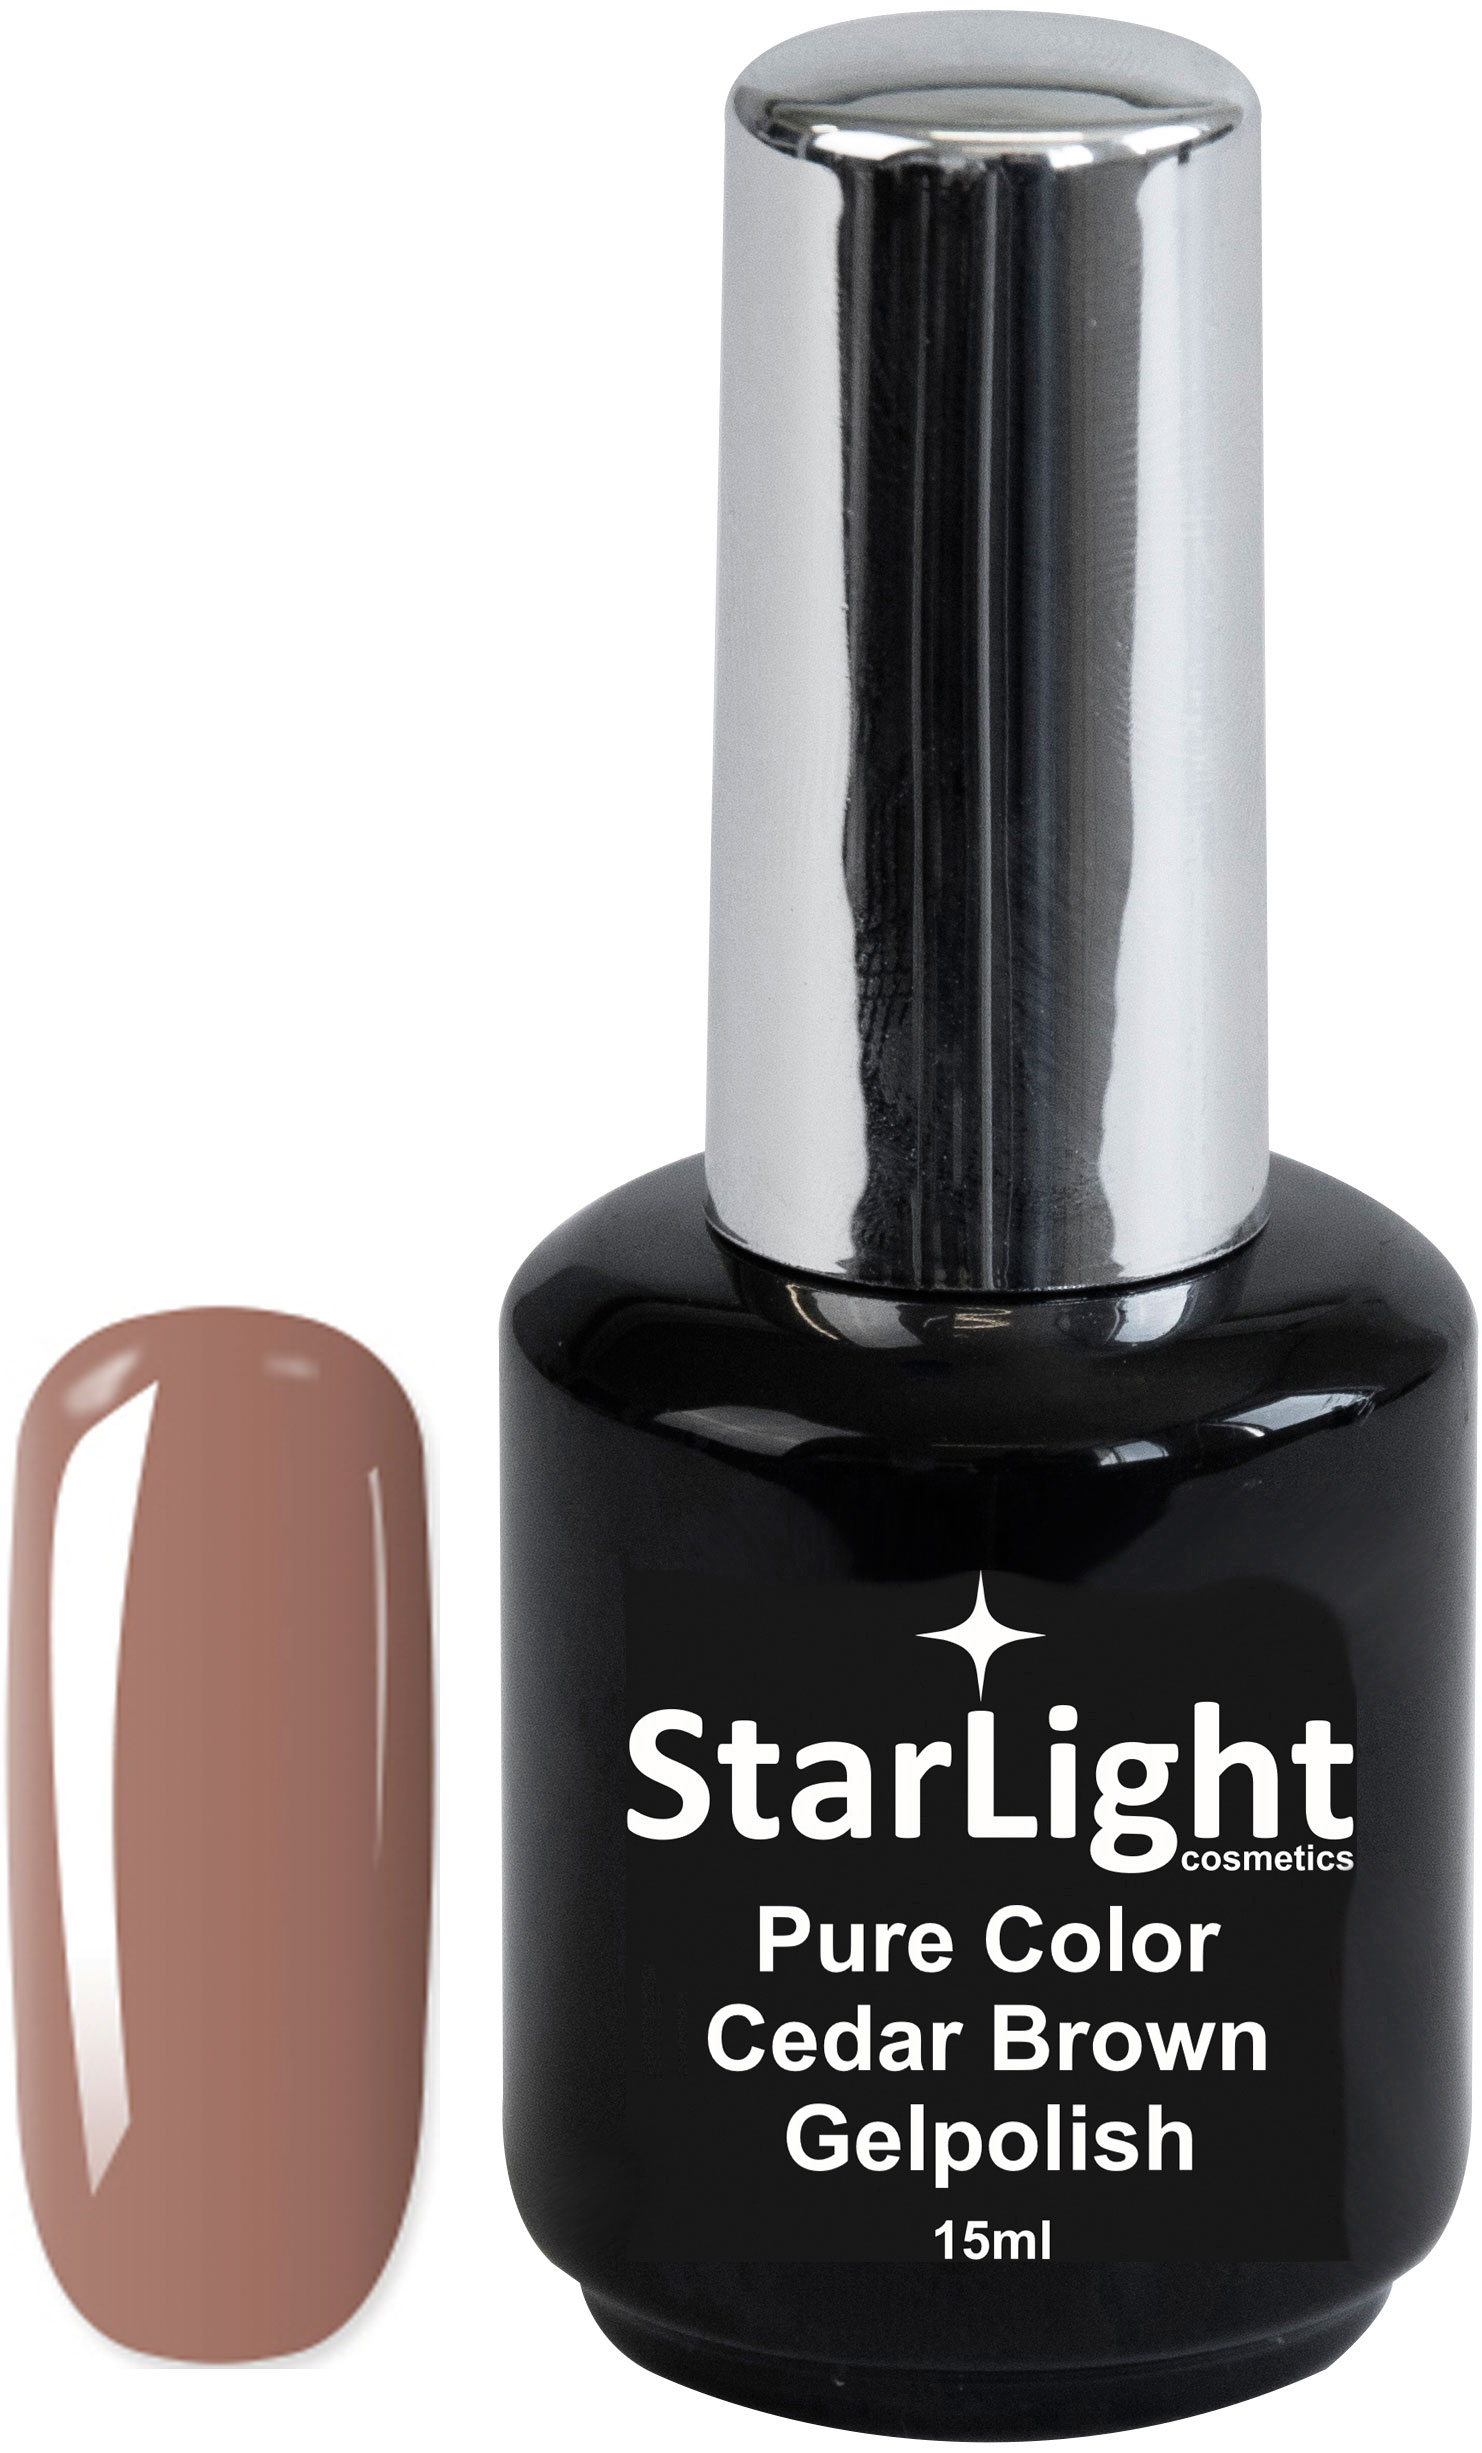 Naglar Gelpolish Pure Color Cedar Brown - 15 ml